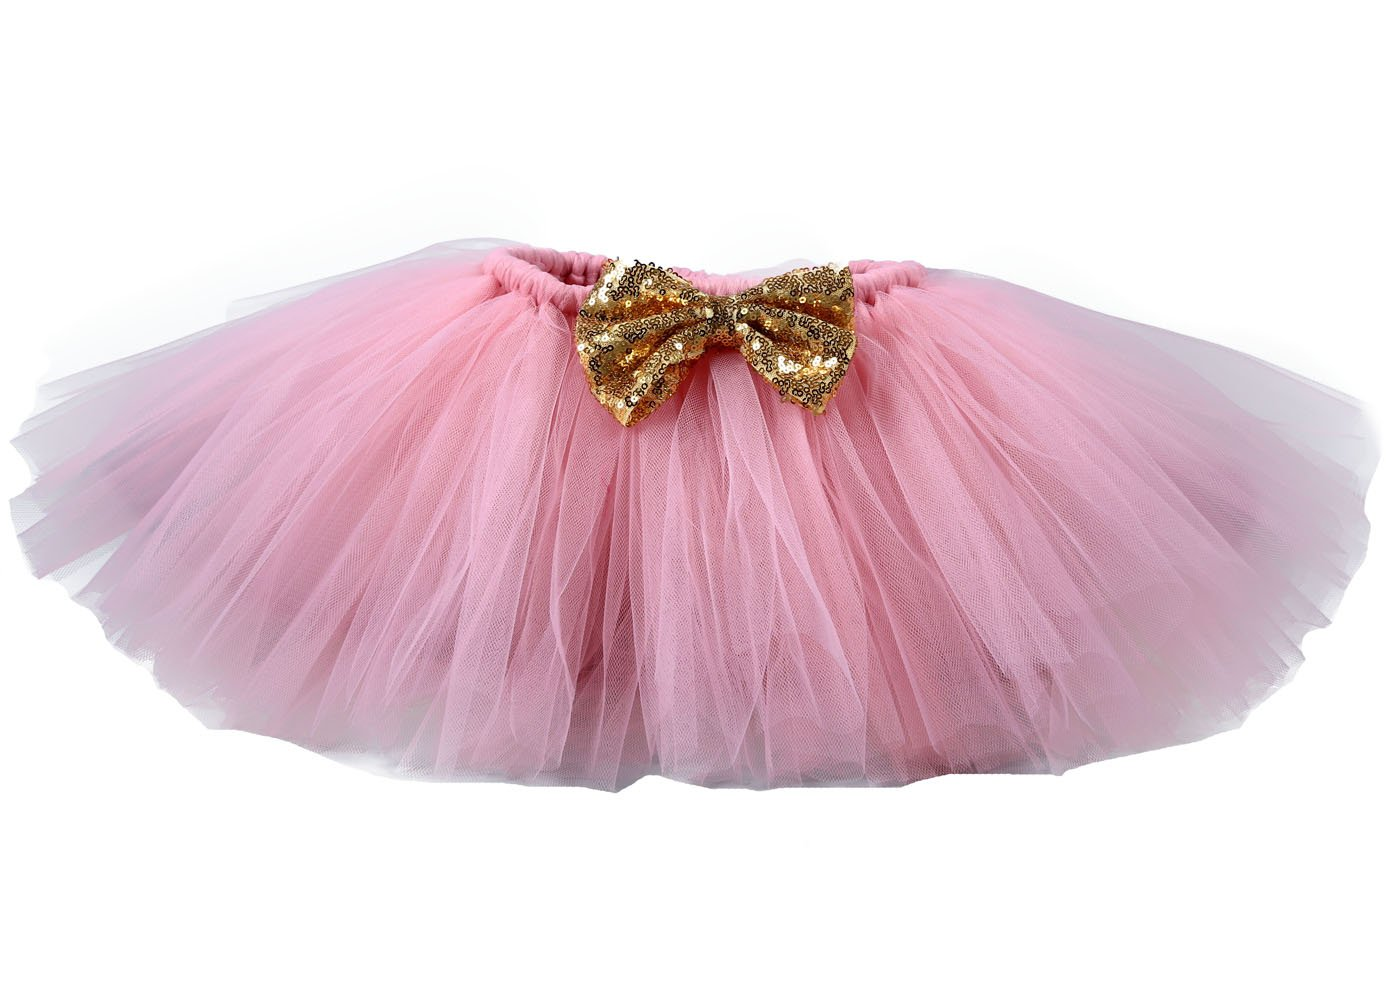 Tutu Dreams Pink Tutus Skirt for Girls (10 for 9-10Y, Pink) by Tutu Dreams